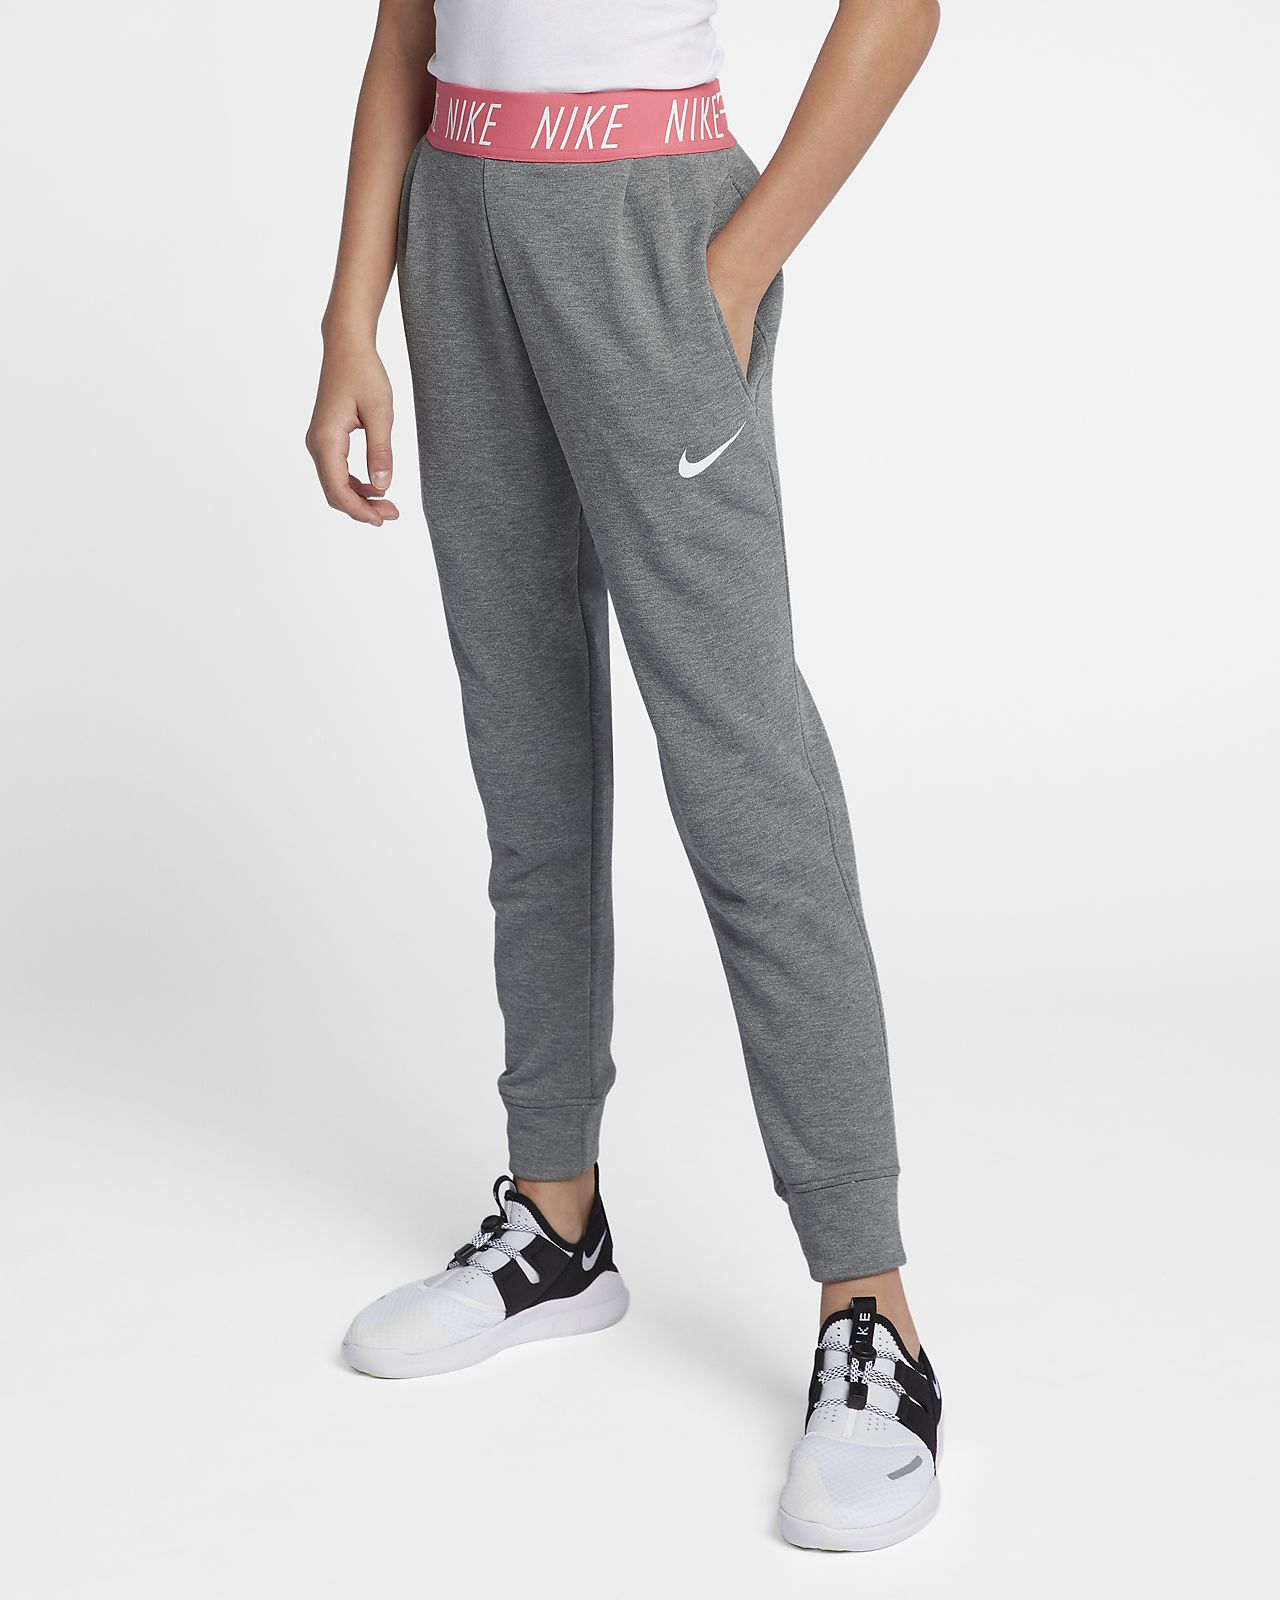 Pantalon de training Nike Dri-FIT Core Studio pour Fille plus âgée